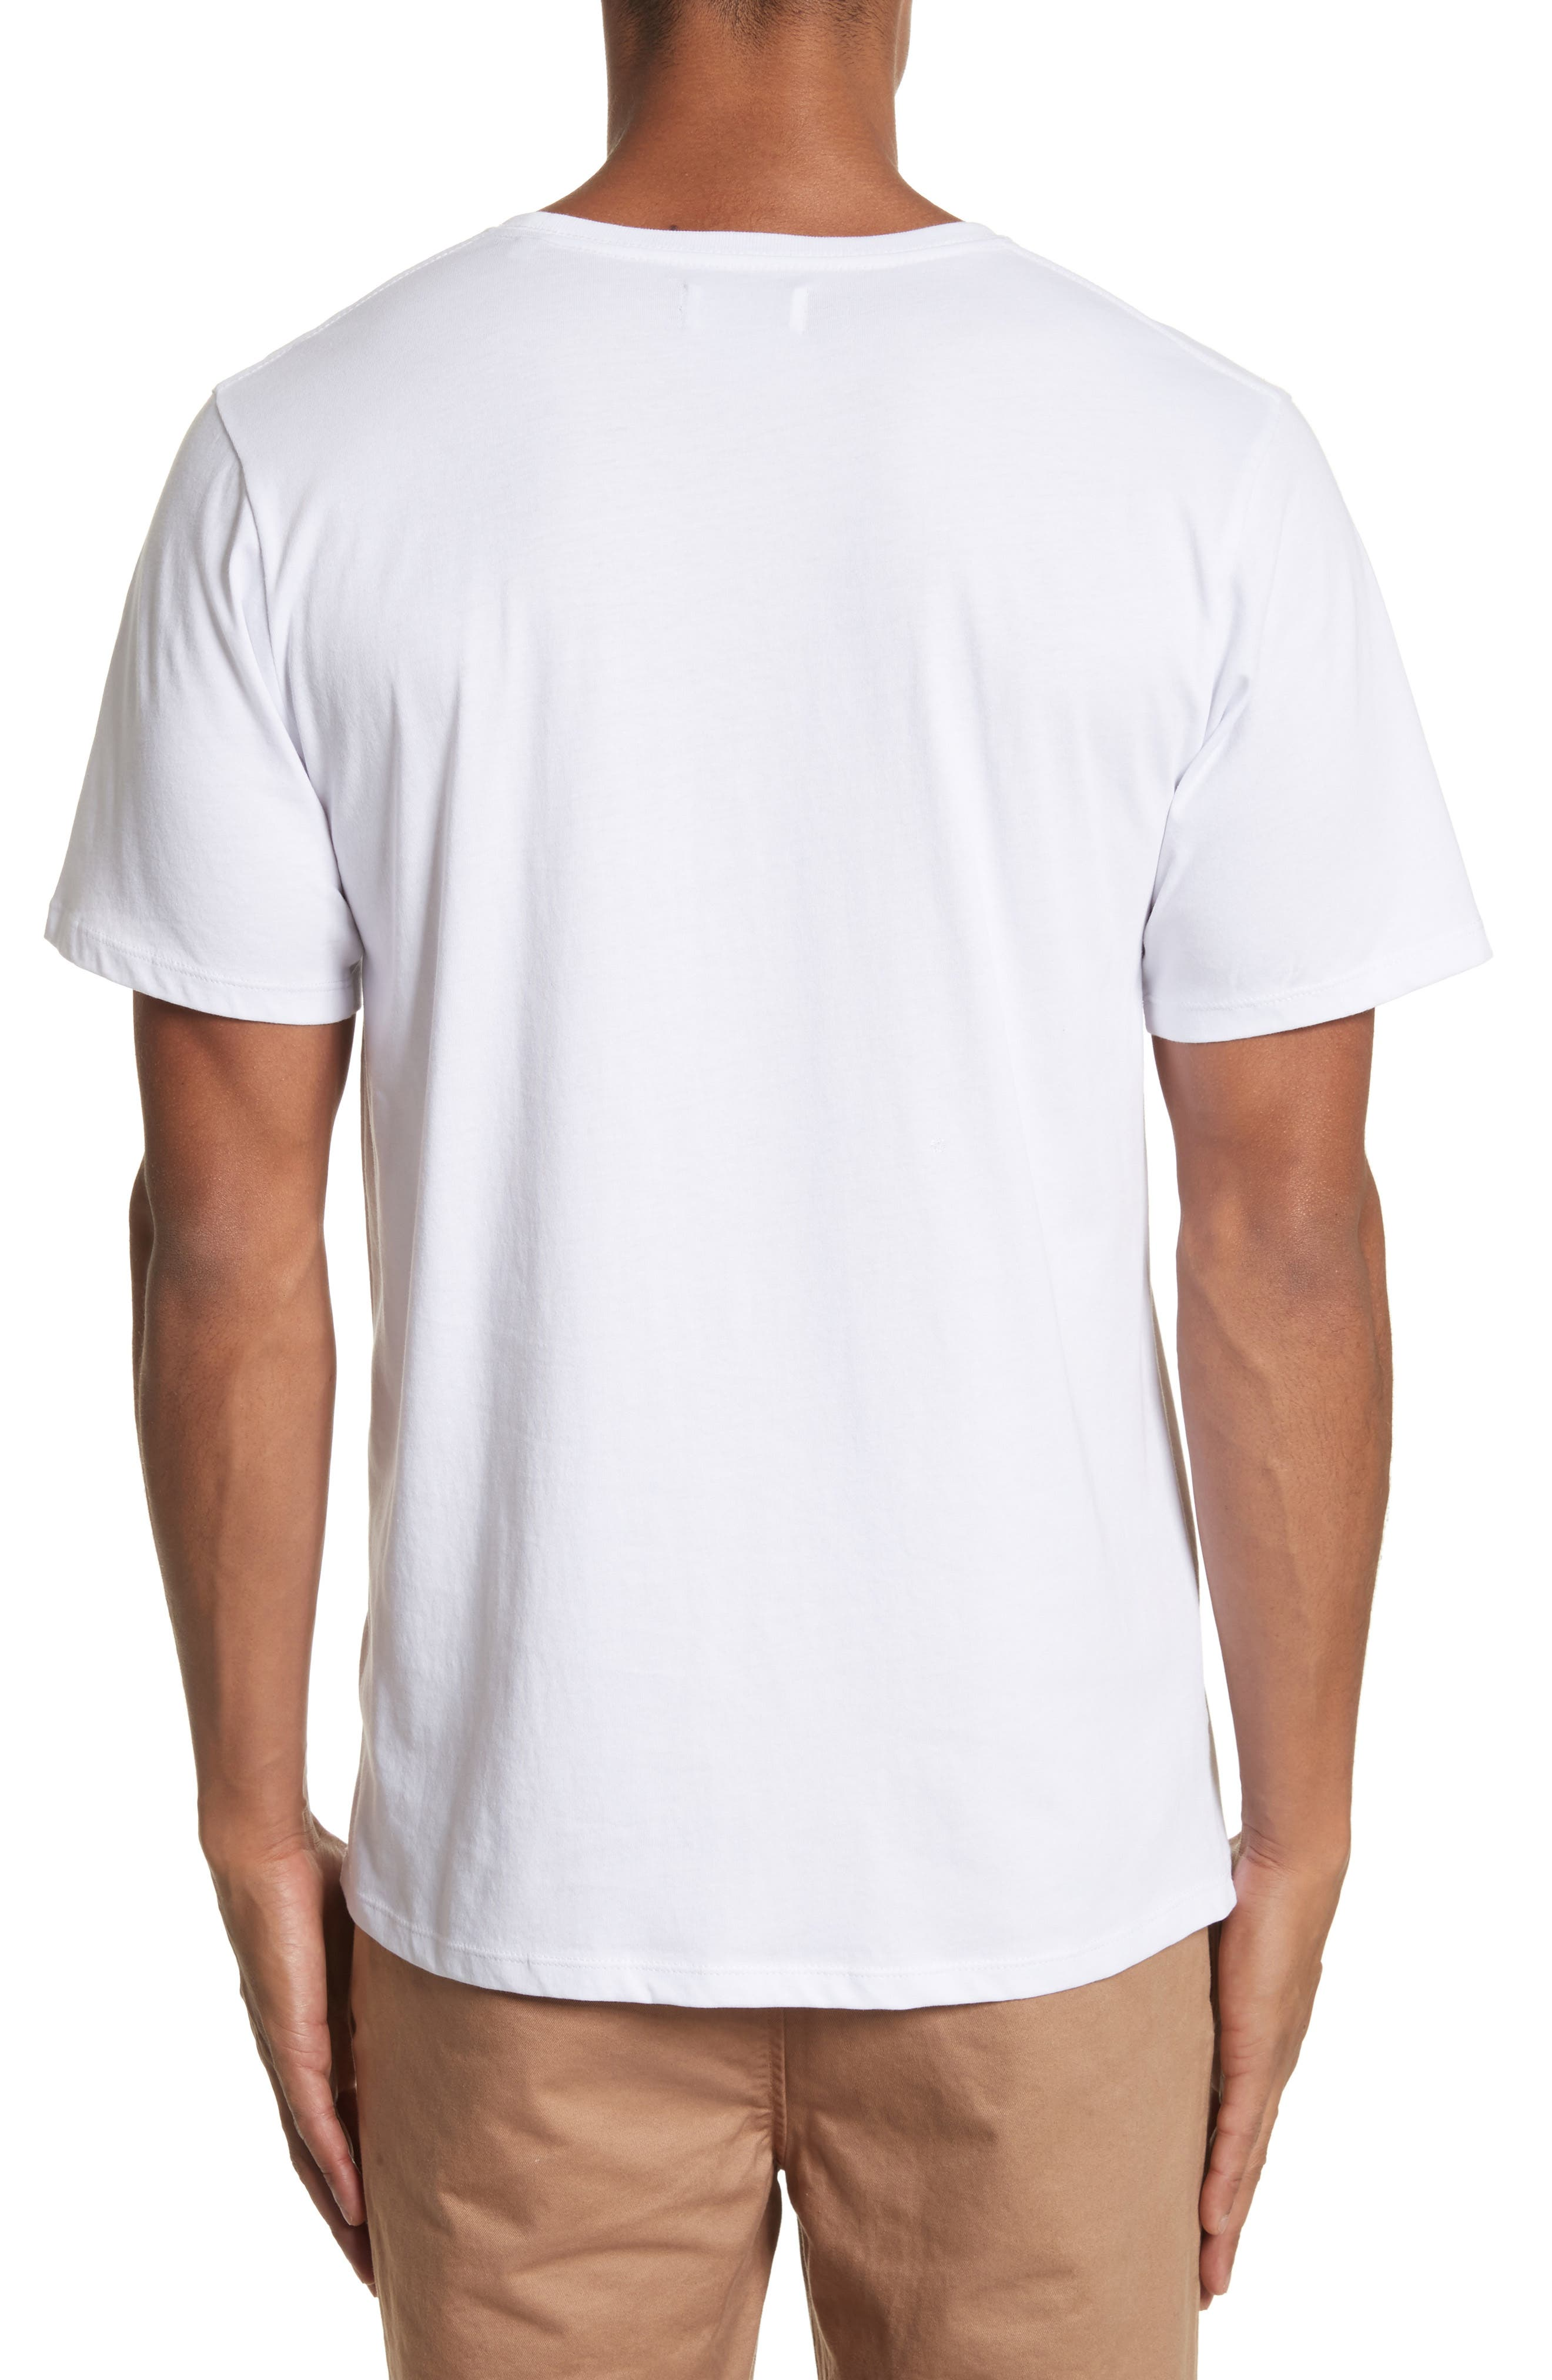 Saturdays USA Established Graphic T-Shirt,                             Alternate thumbnail 2, color,                             White